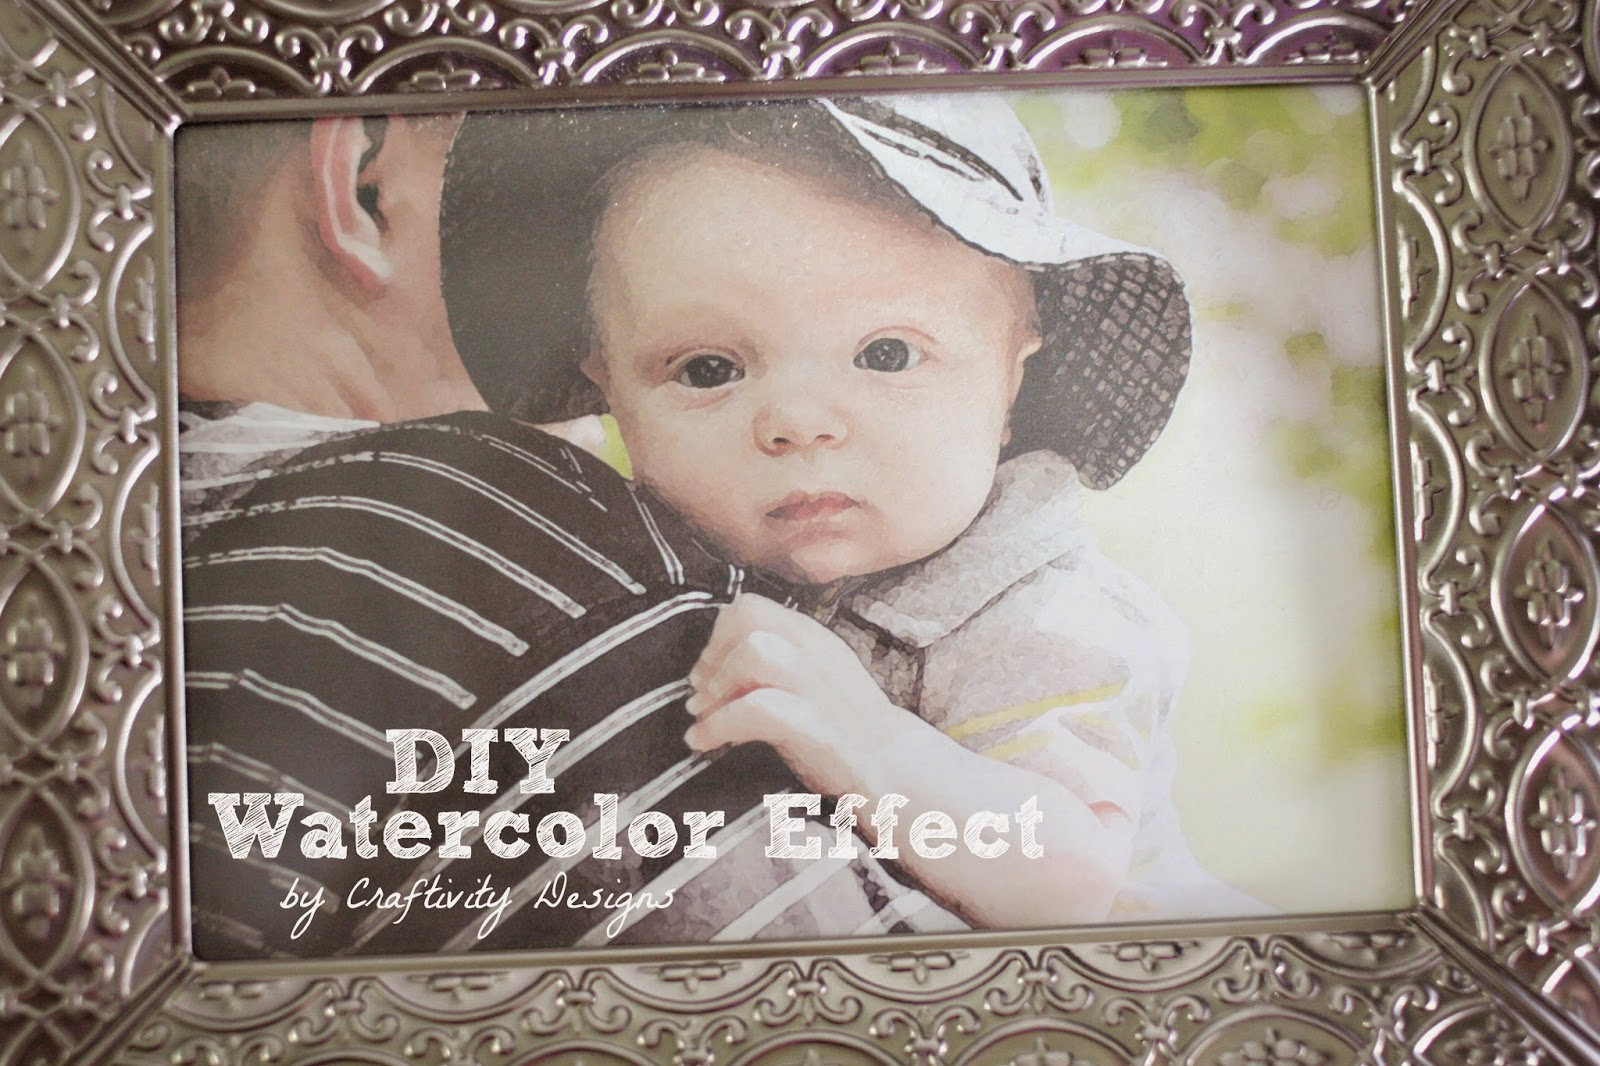 DIY Watercolor Effect -- easy to do with simple tools -- Craftivity Designs